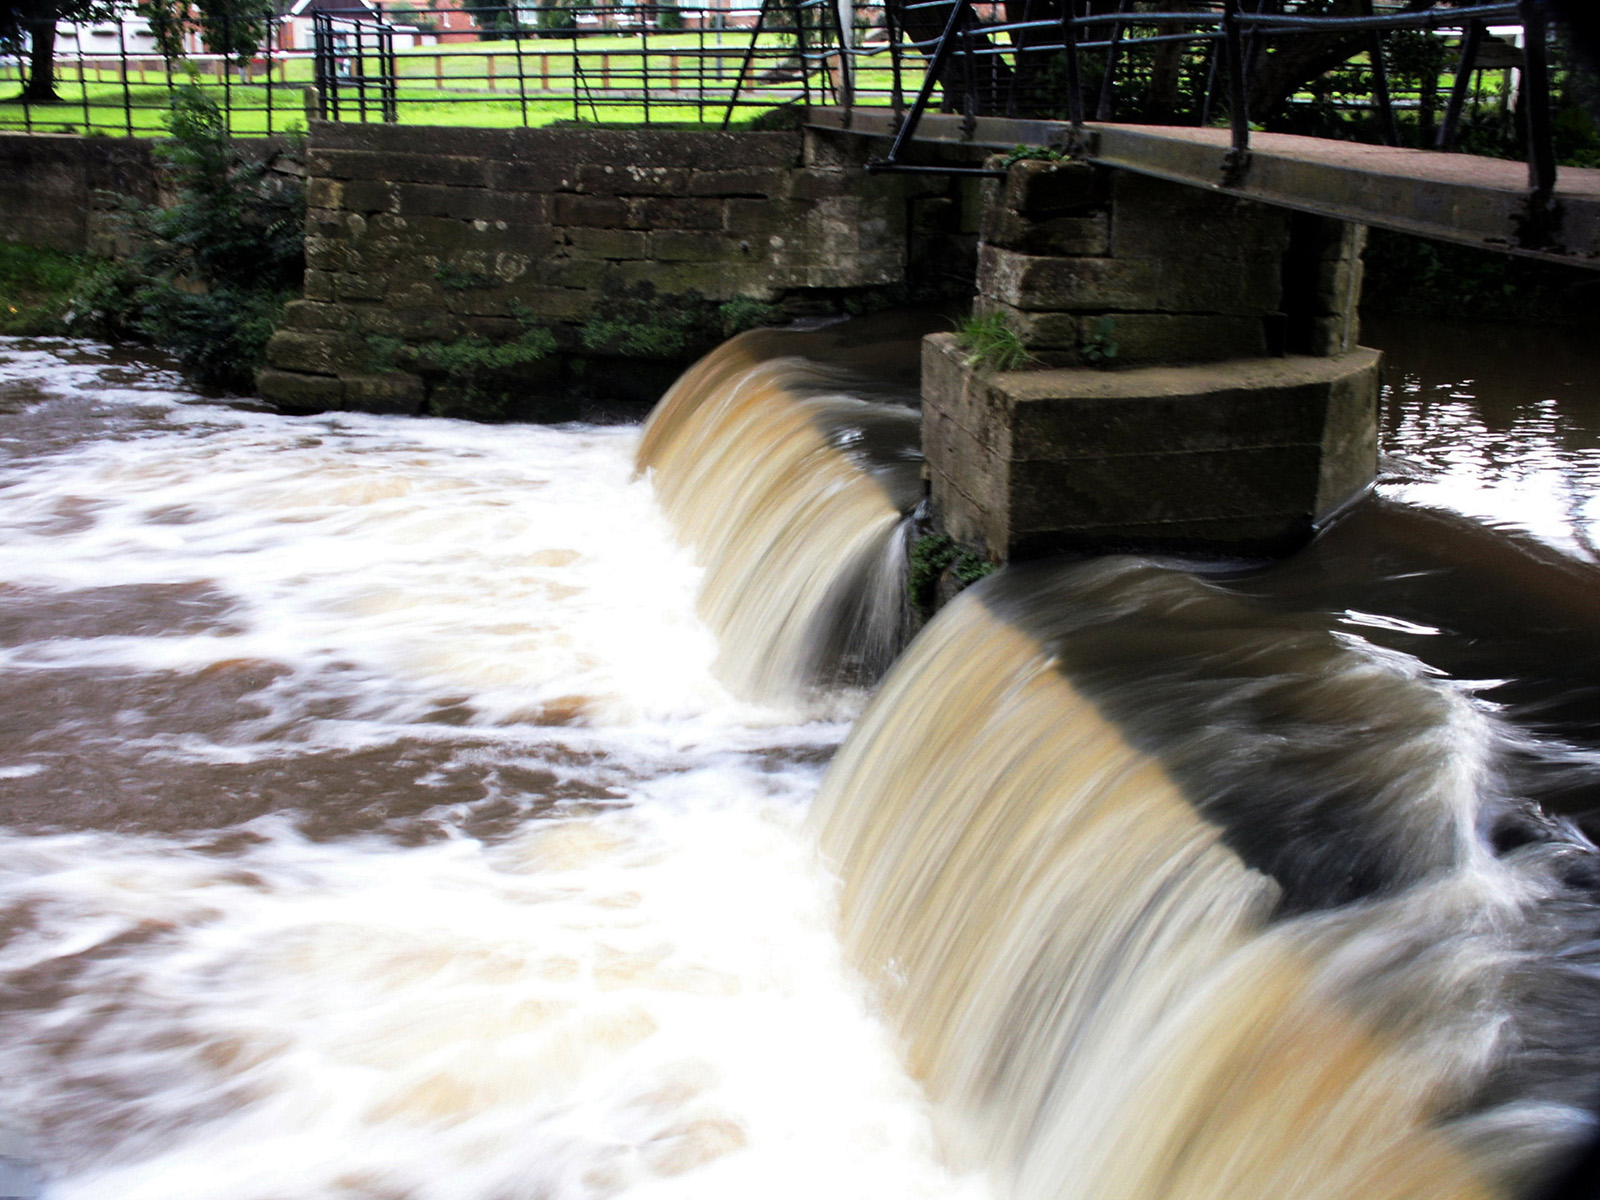 Norby waterfall, Bspo06, Dam, Nature, River, HQ Photo